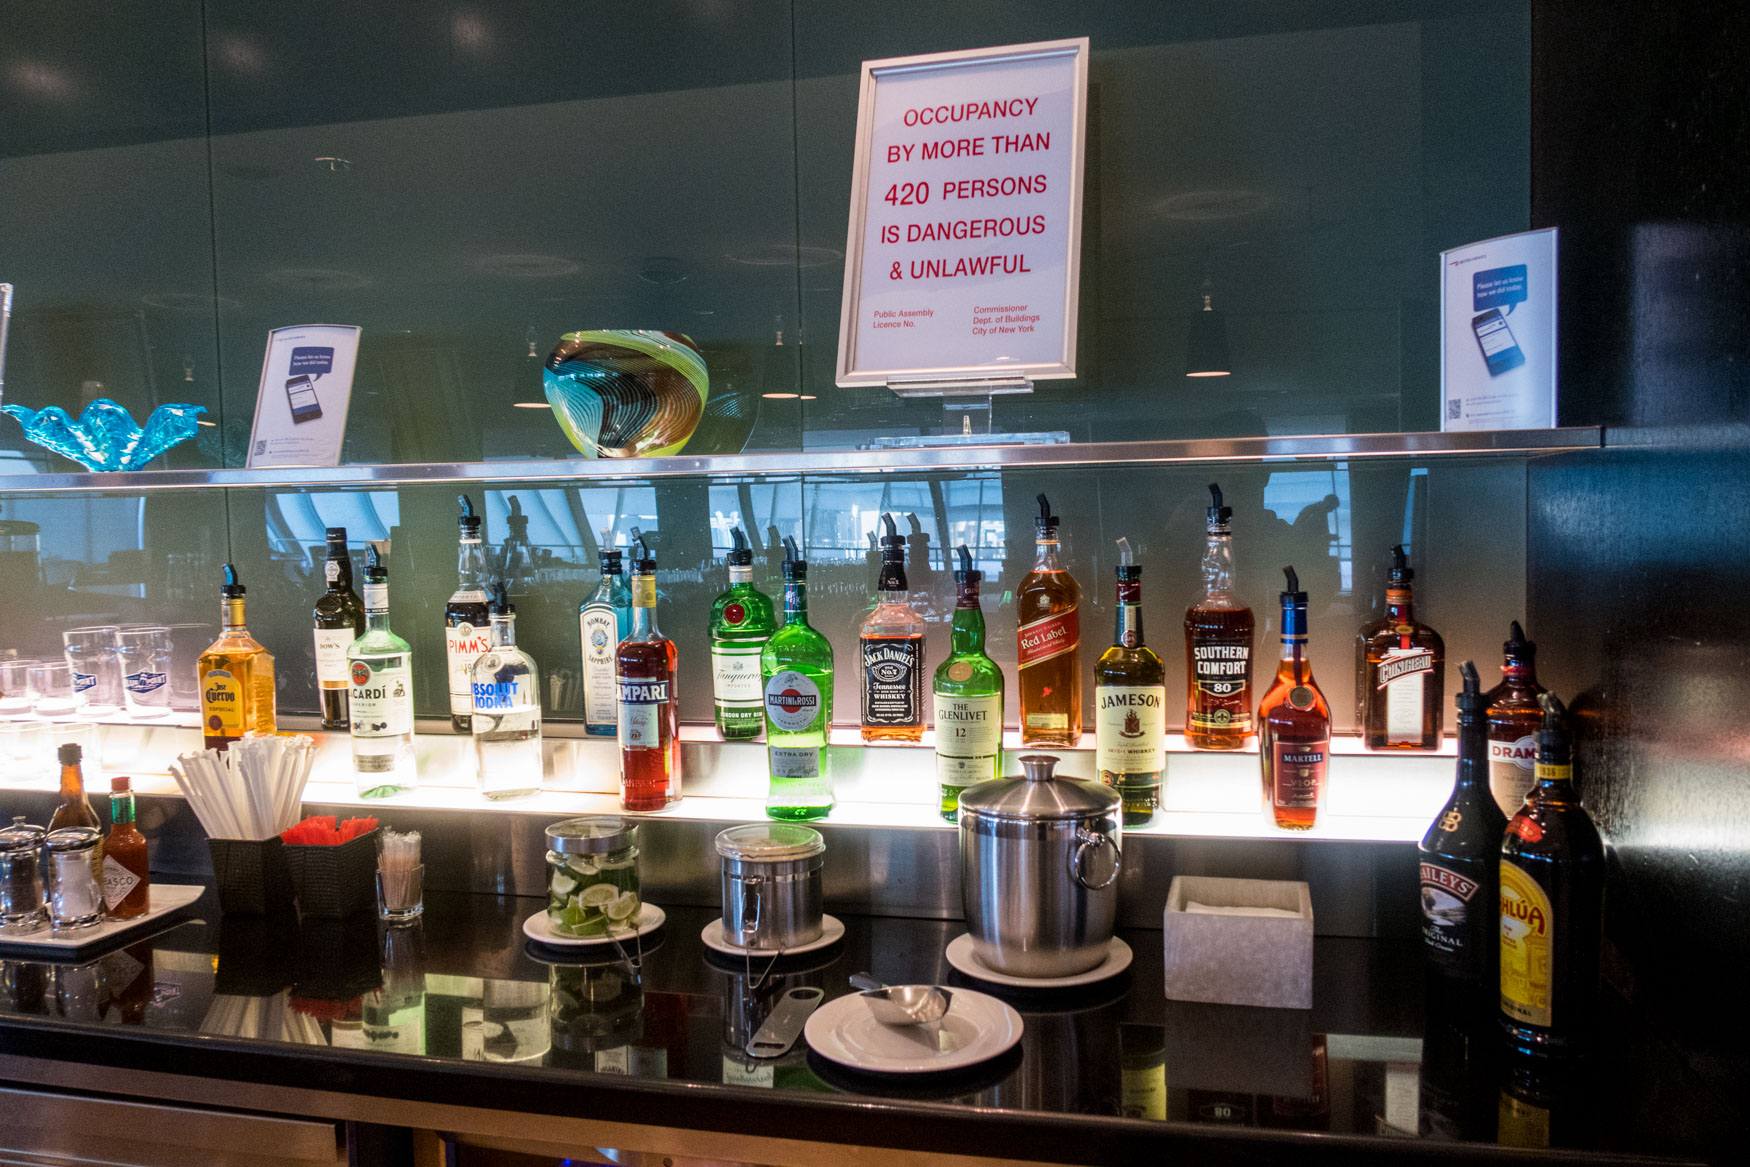 British Airways Galleries Lounge Alcohol